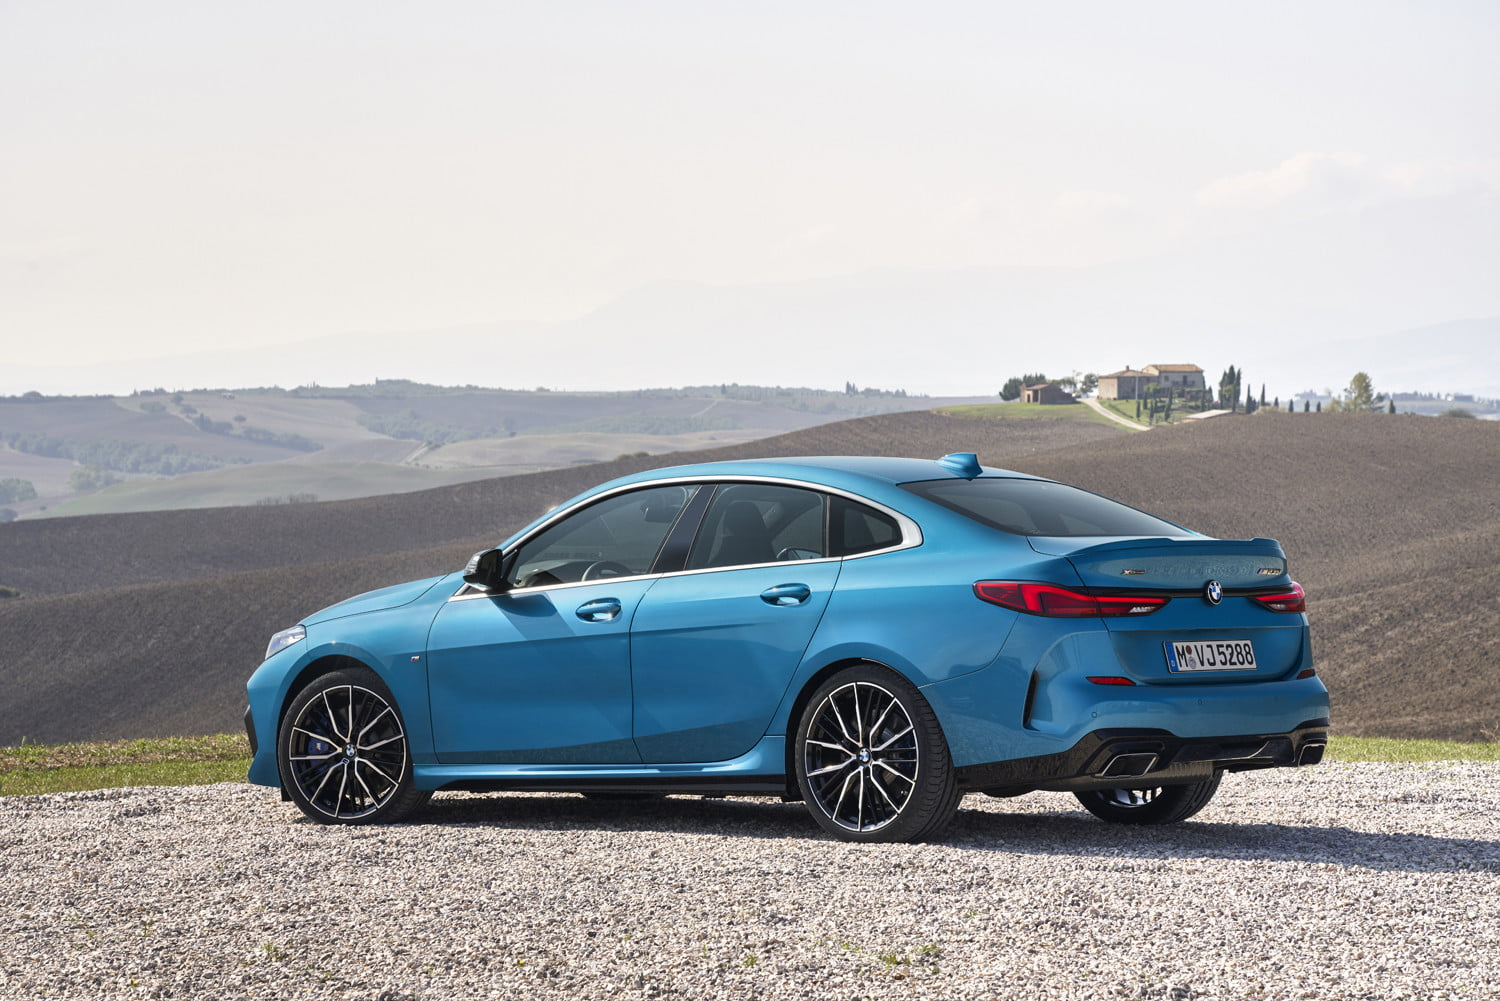 2020 bmw 228i m235i gran coupe unveiled as entry level sedans 2 series gc off 7